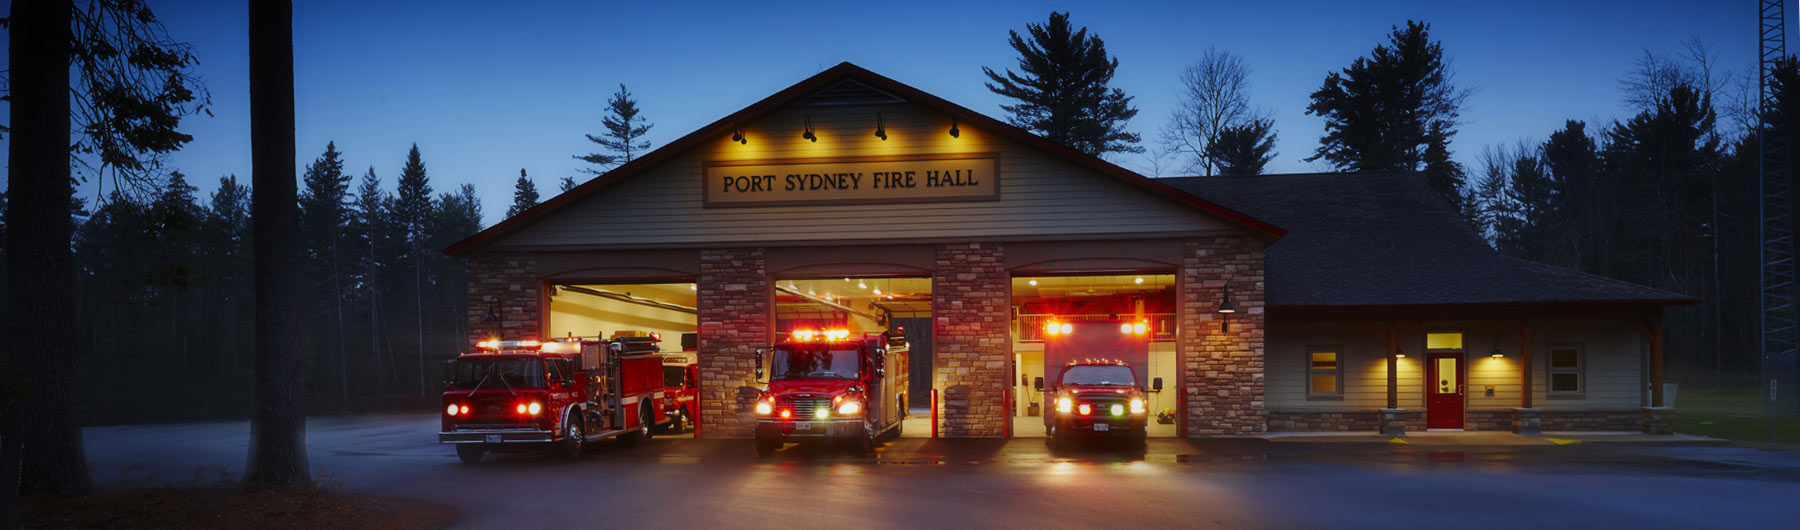 port sydney fire department station at night with three fire trucks